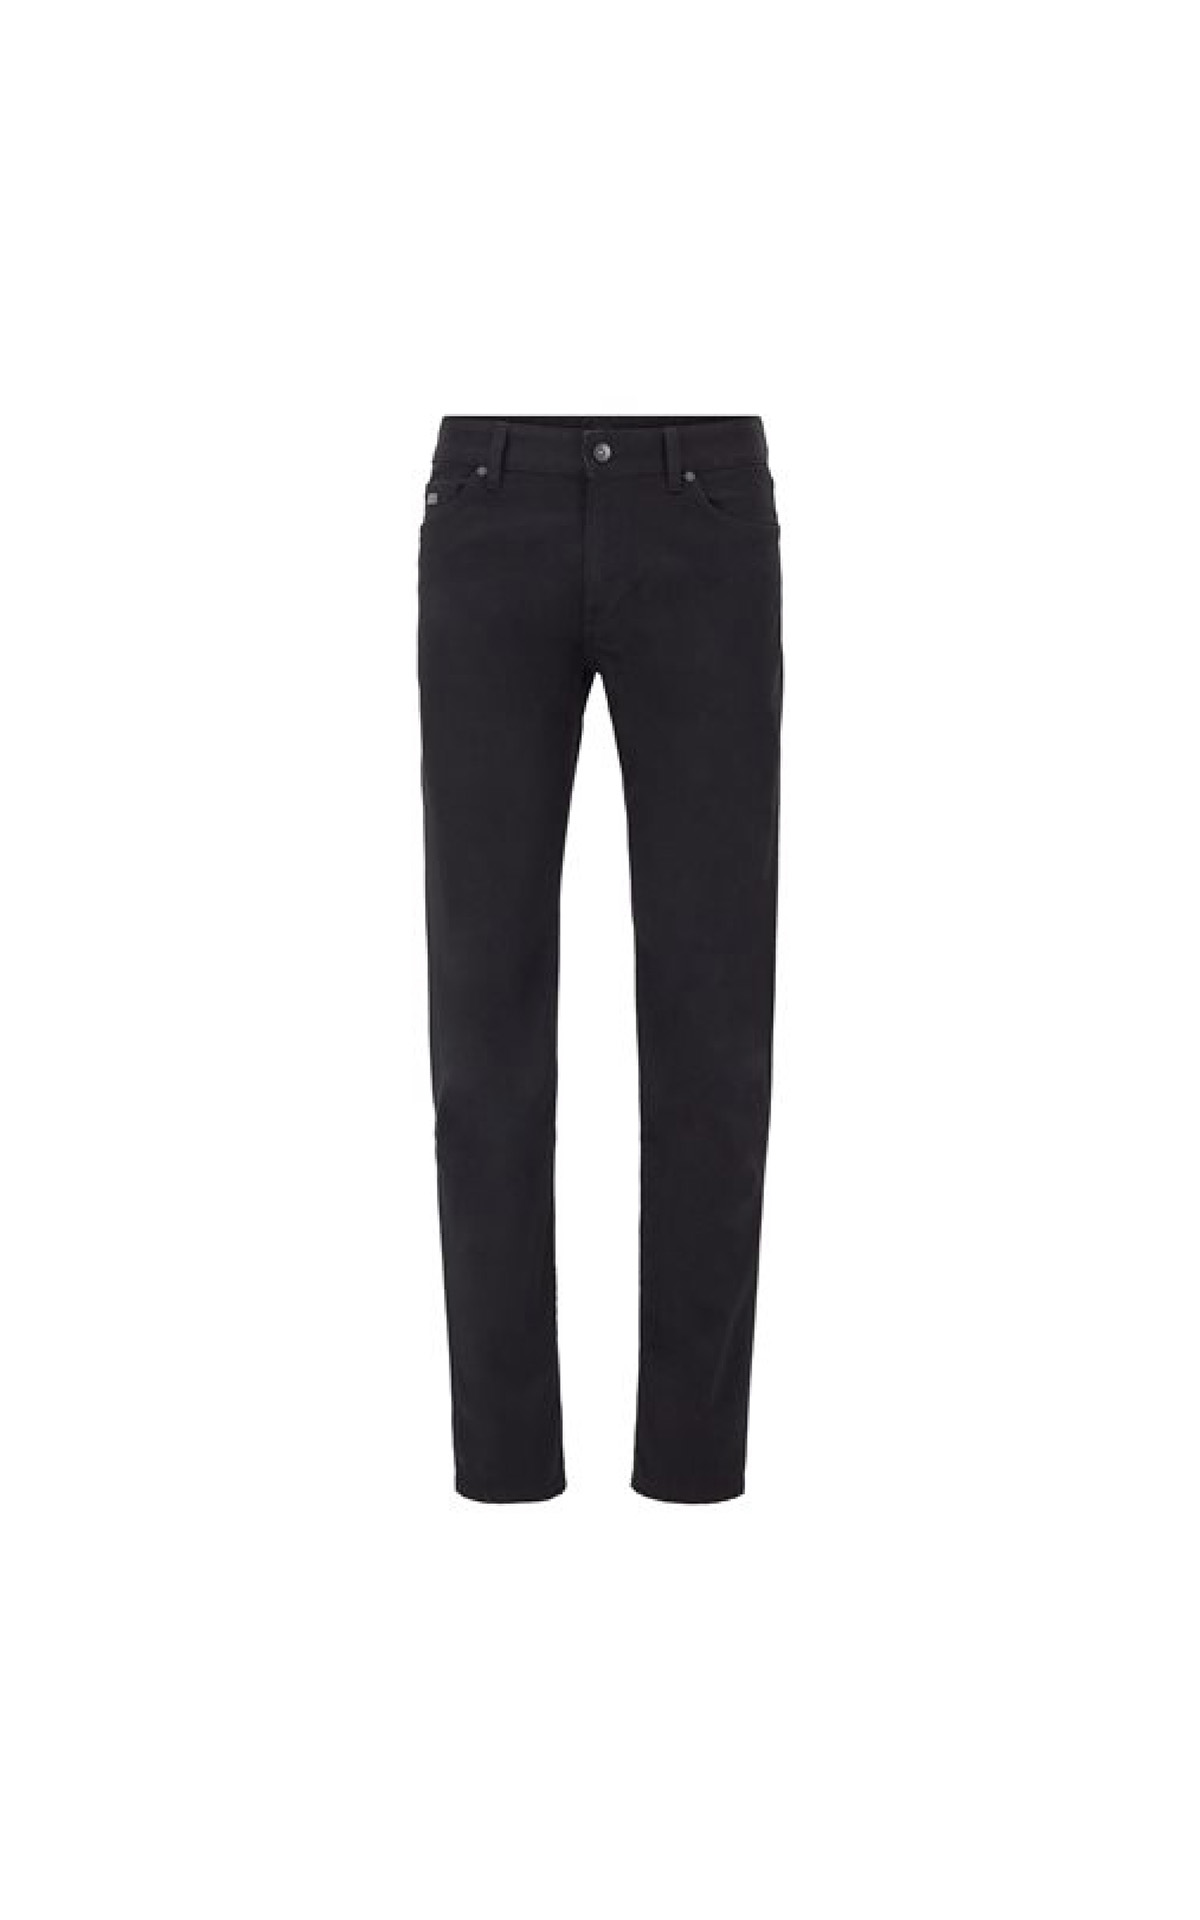 Boss Maine3 Regular-fit jeans in black comfort-stretch denim at The Bicester Village Shopping Collection